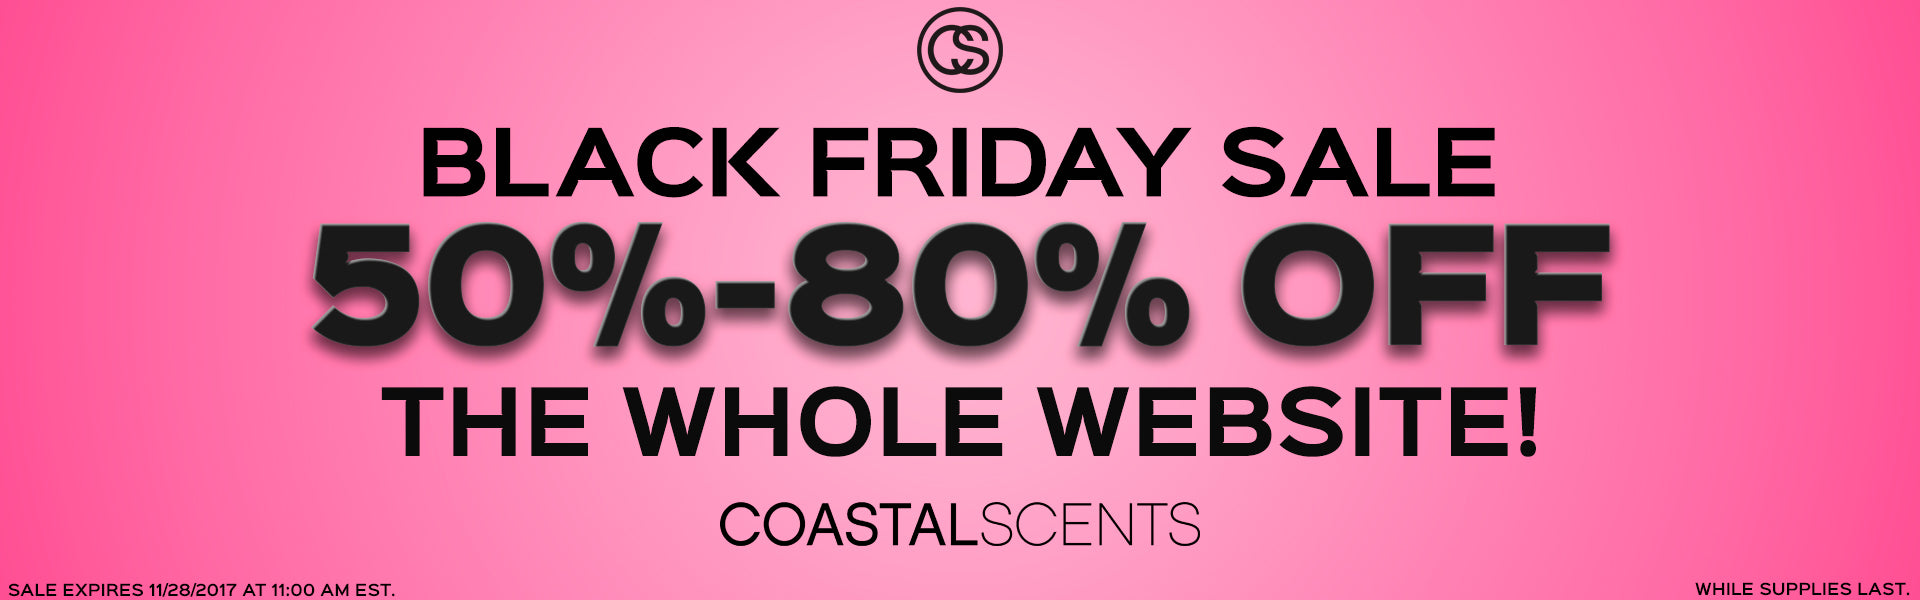 Black Friday Sale 50%-80% OFF The Whole Website